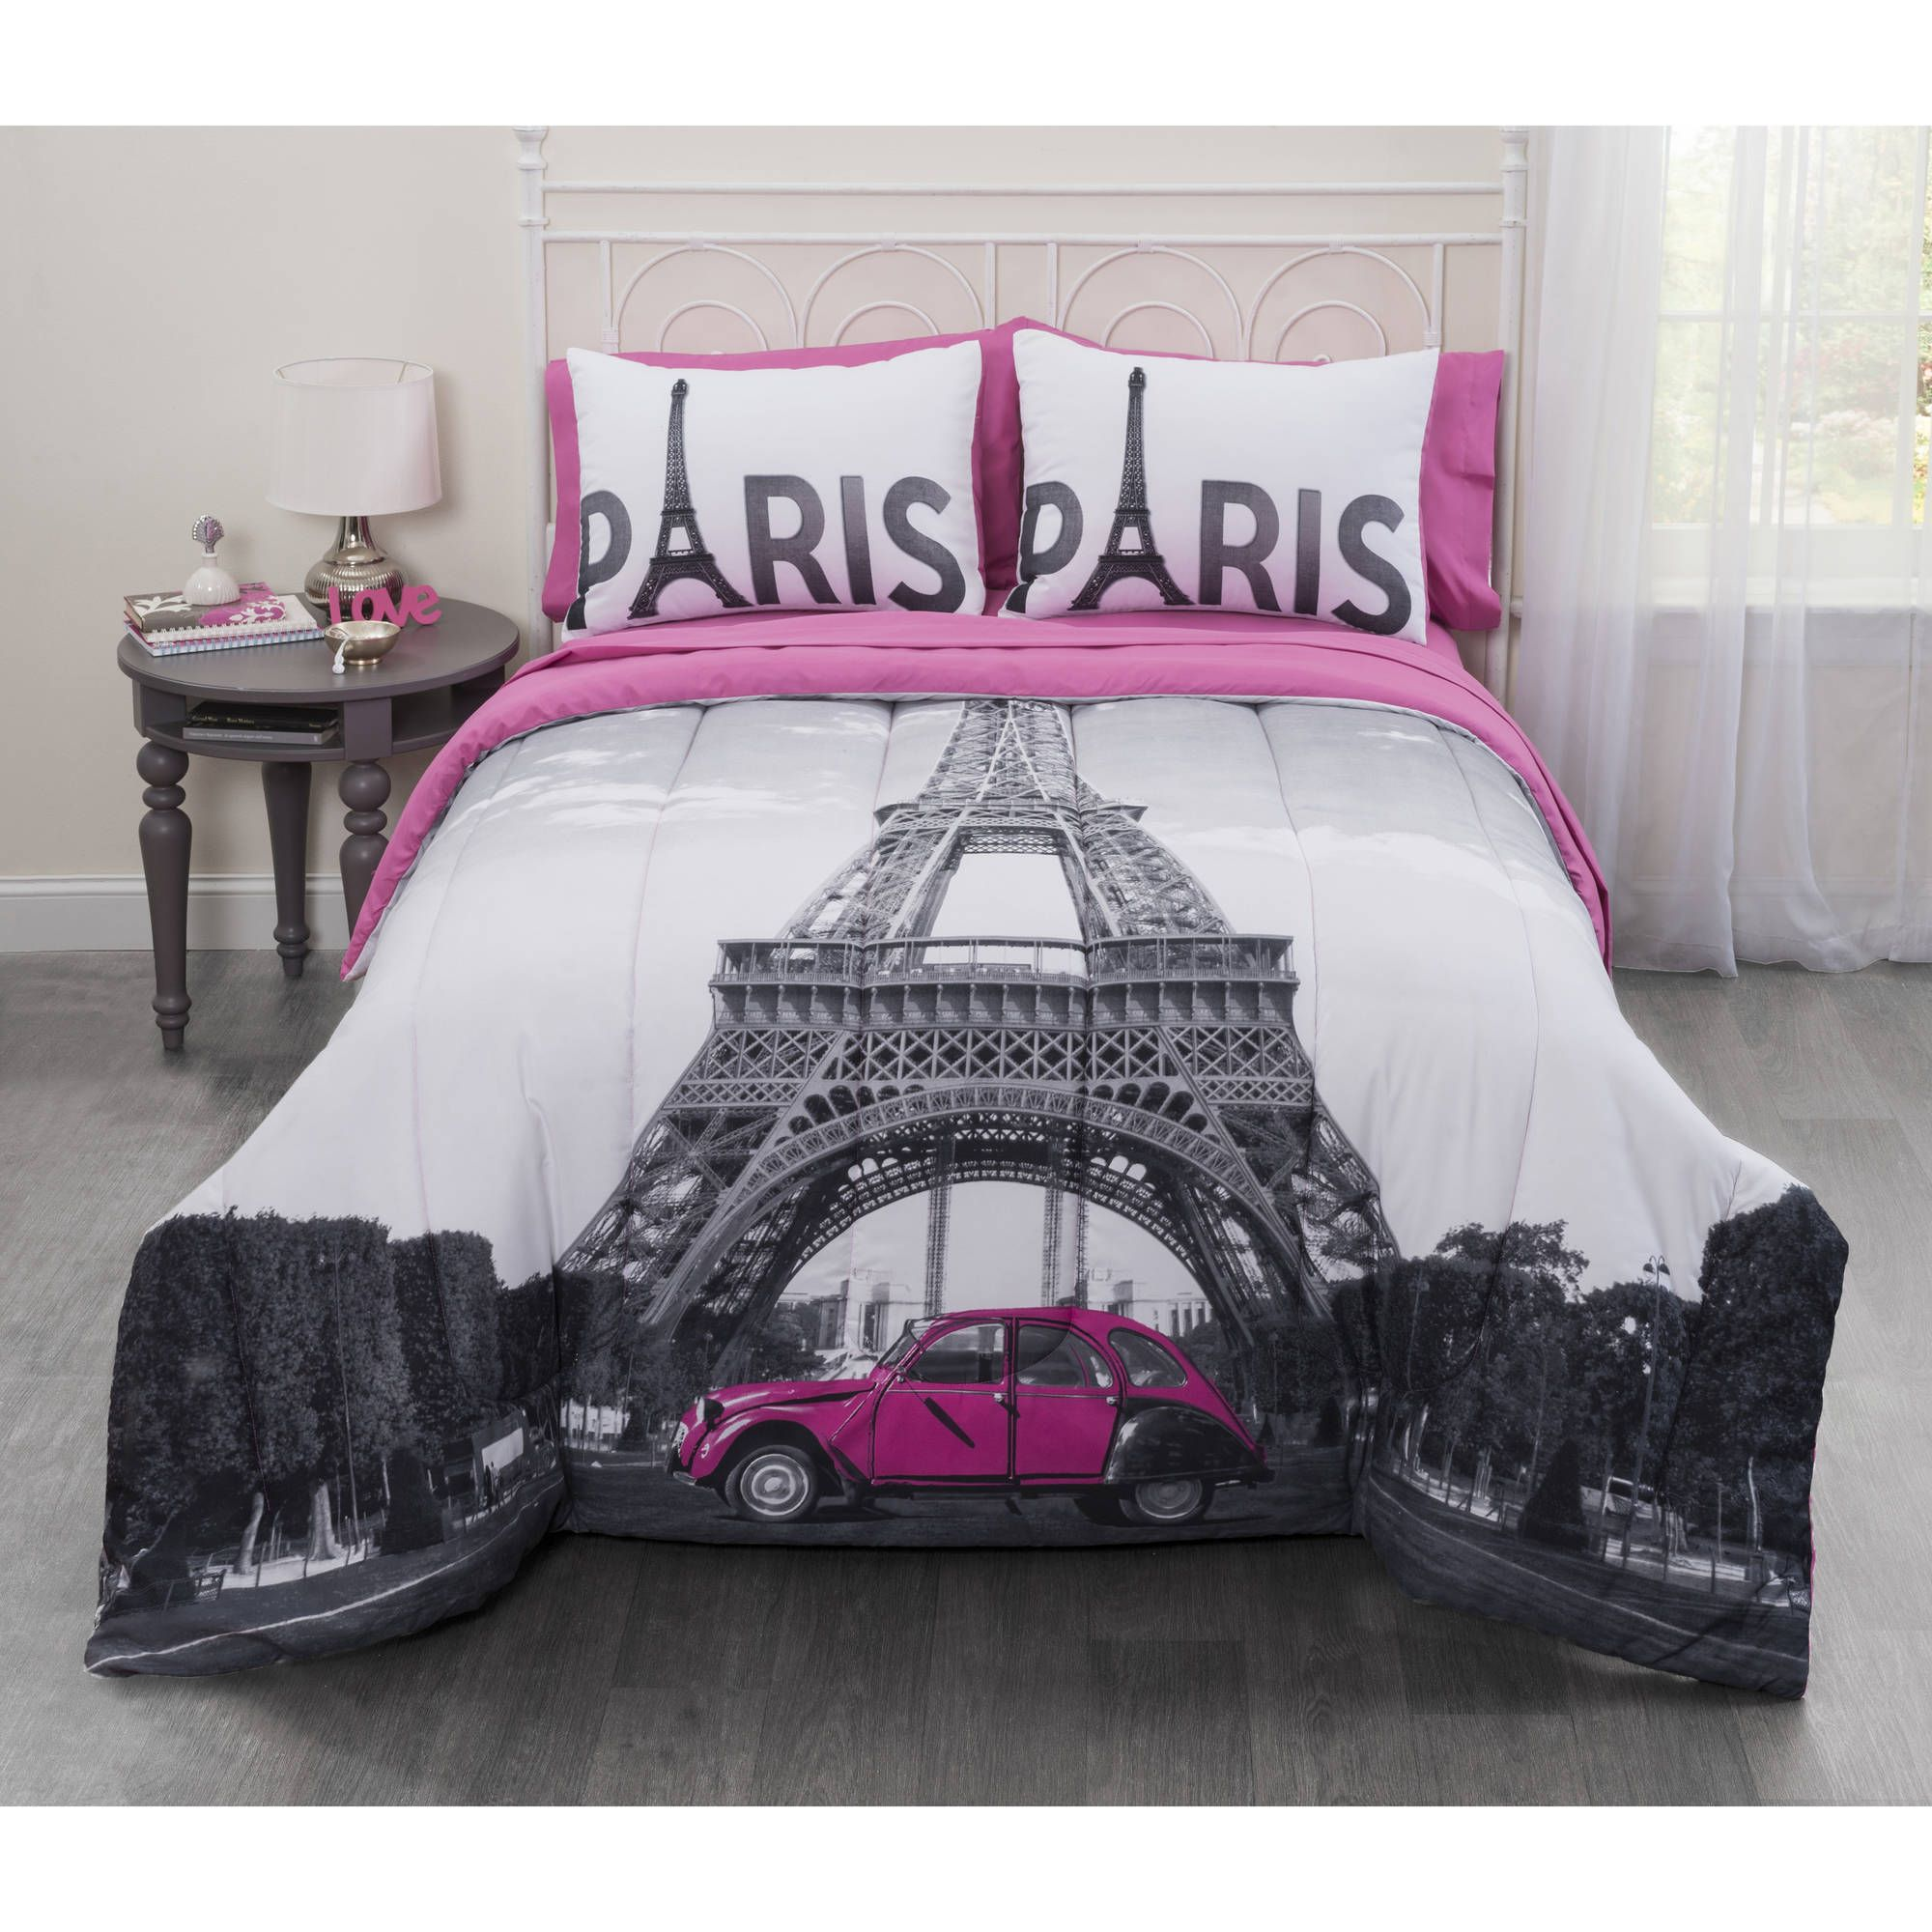 Casa Real Paris Eiffel Tower Bed in a Bag Bedding Set Deal